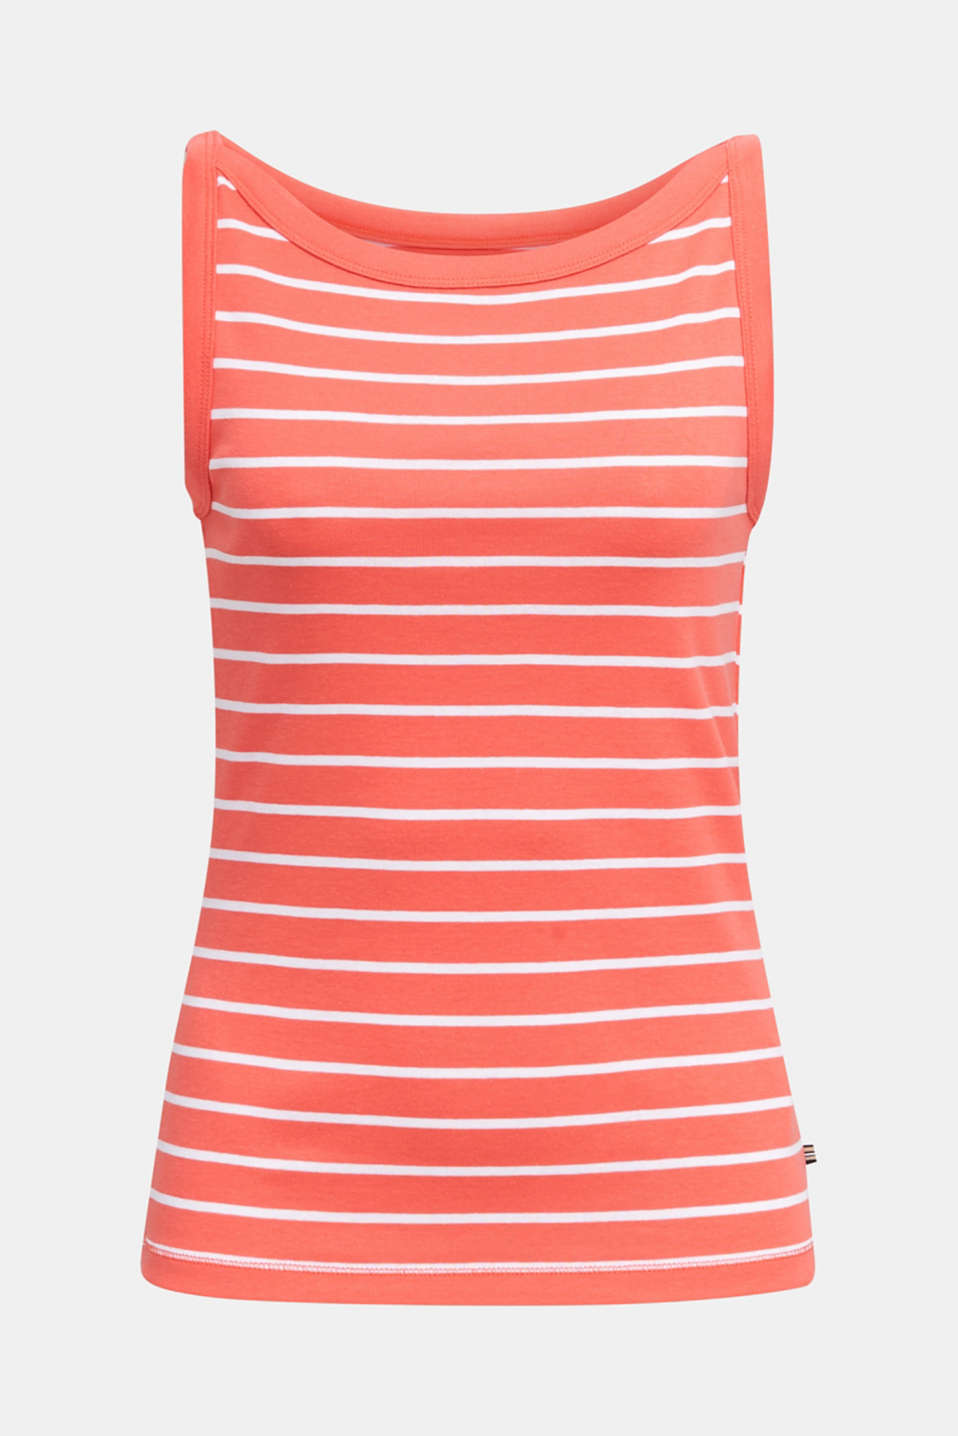 Striped T-shirt, organic cotton, CORAL 4, detail image number 7